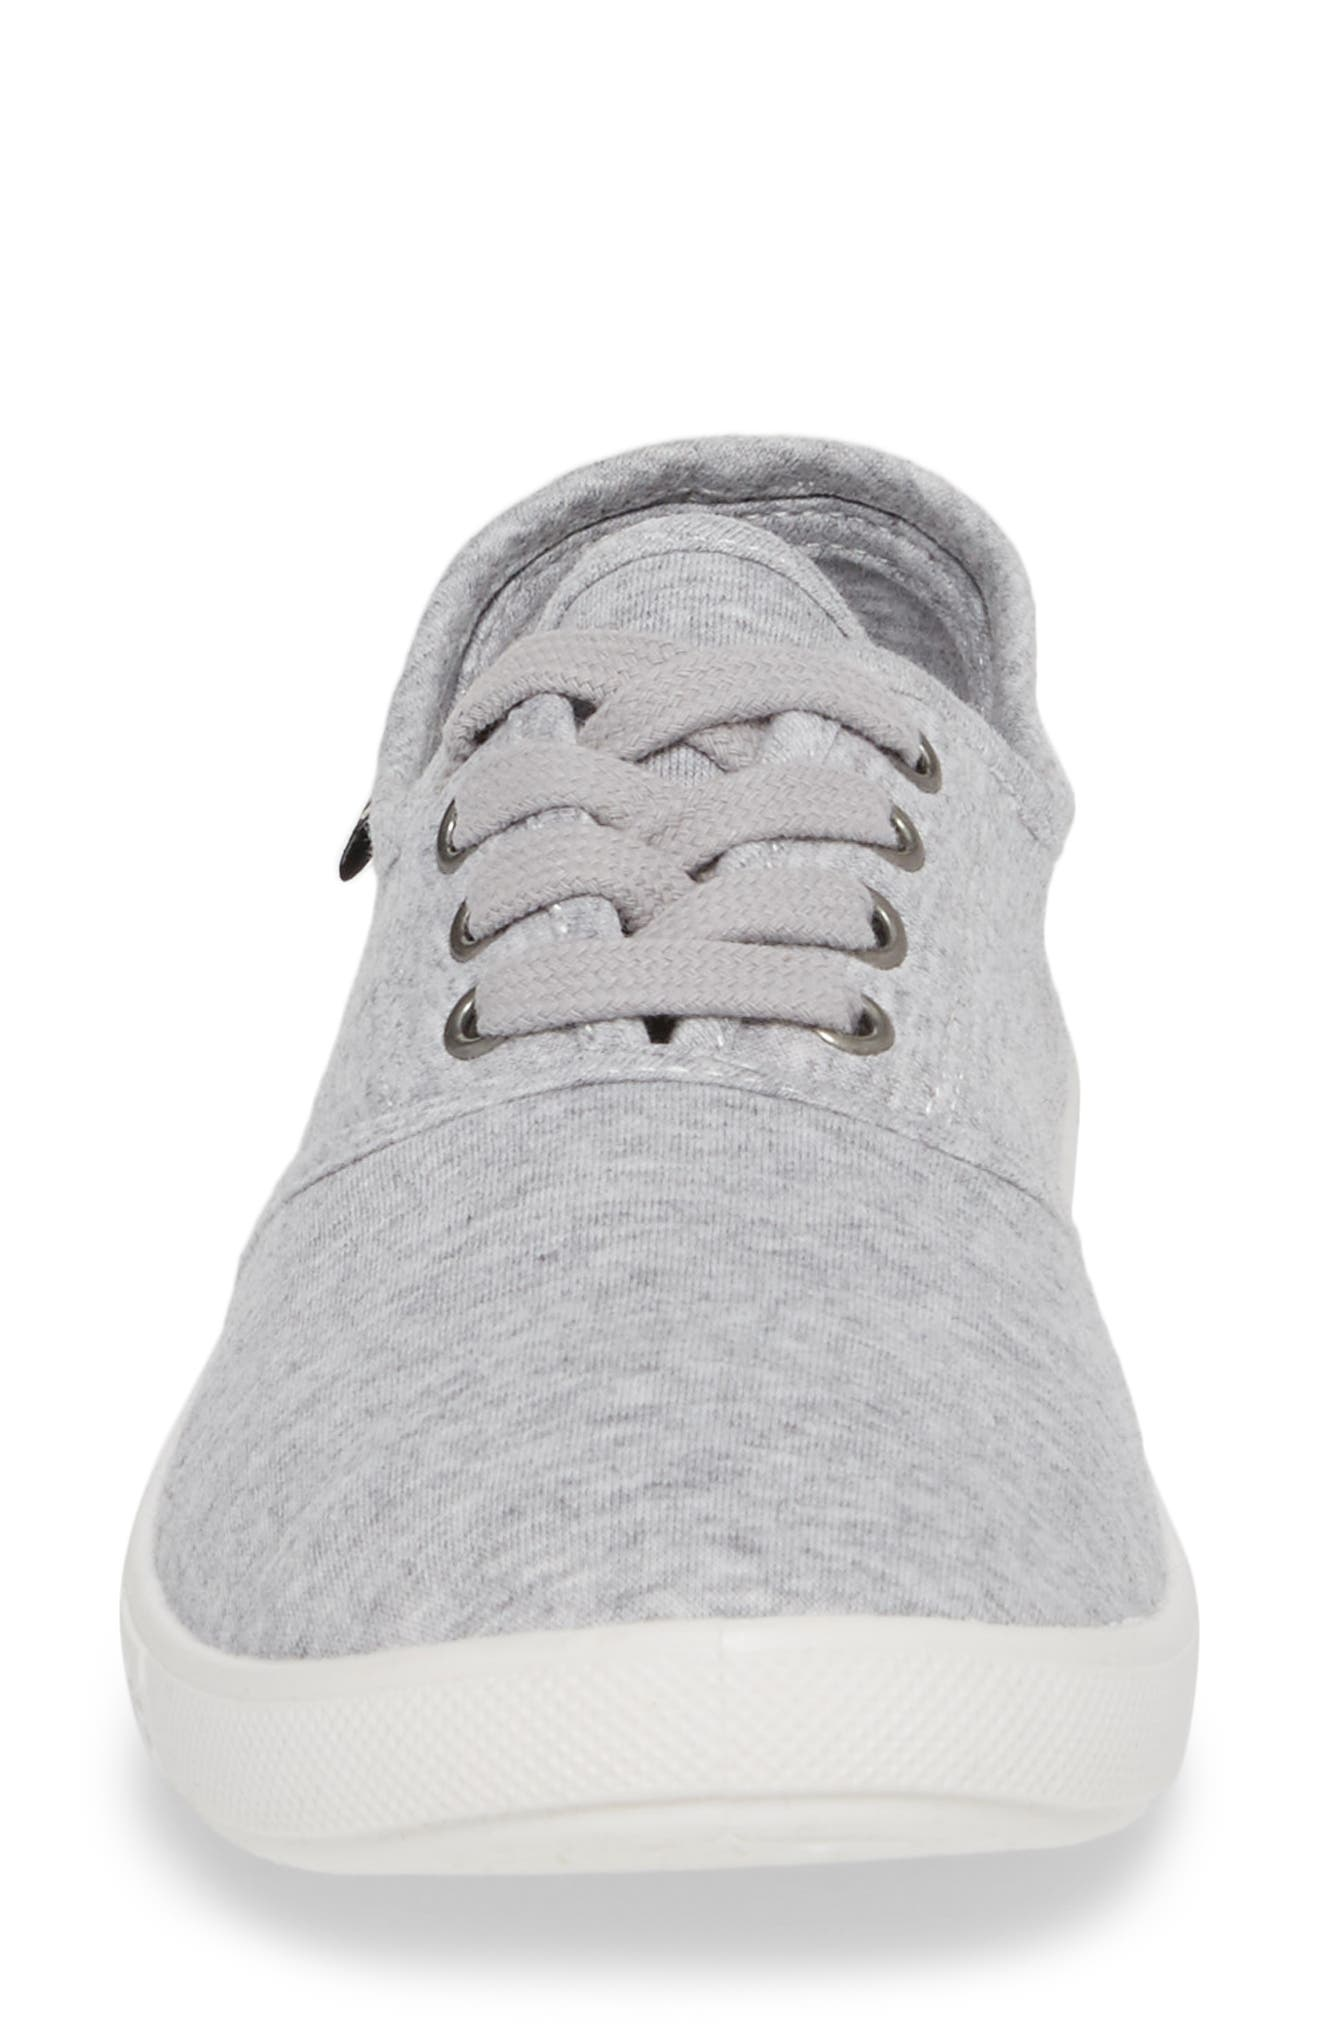 Addy Sneaker,                             Alternate thumbnail 11, color,